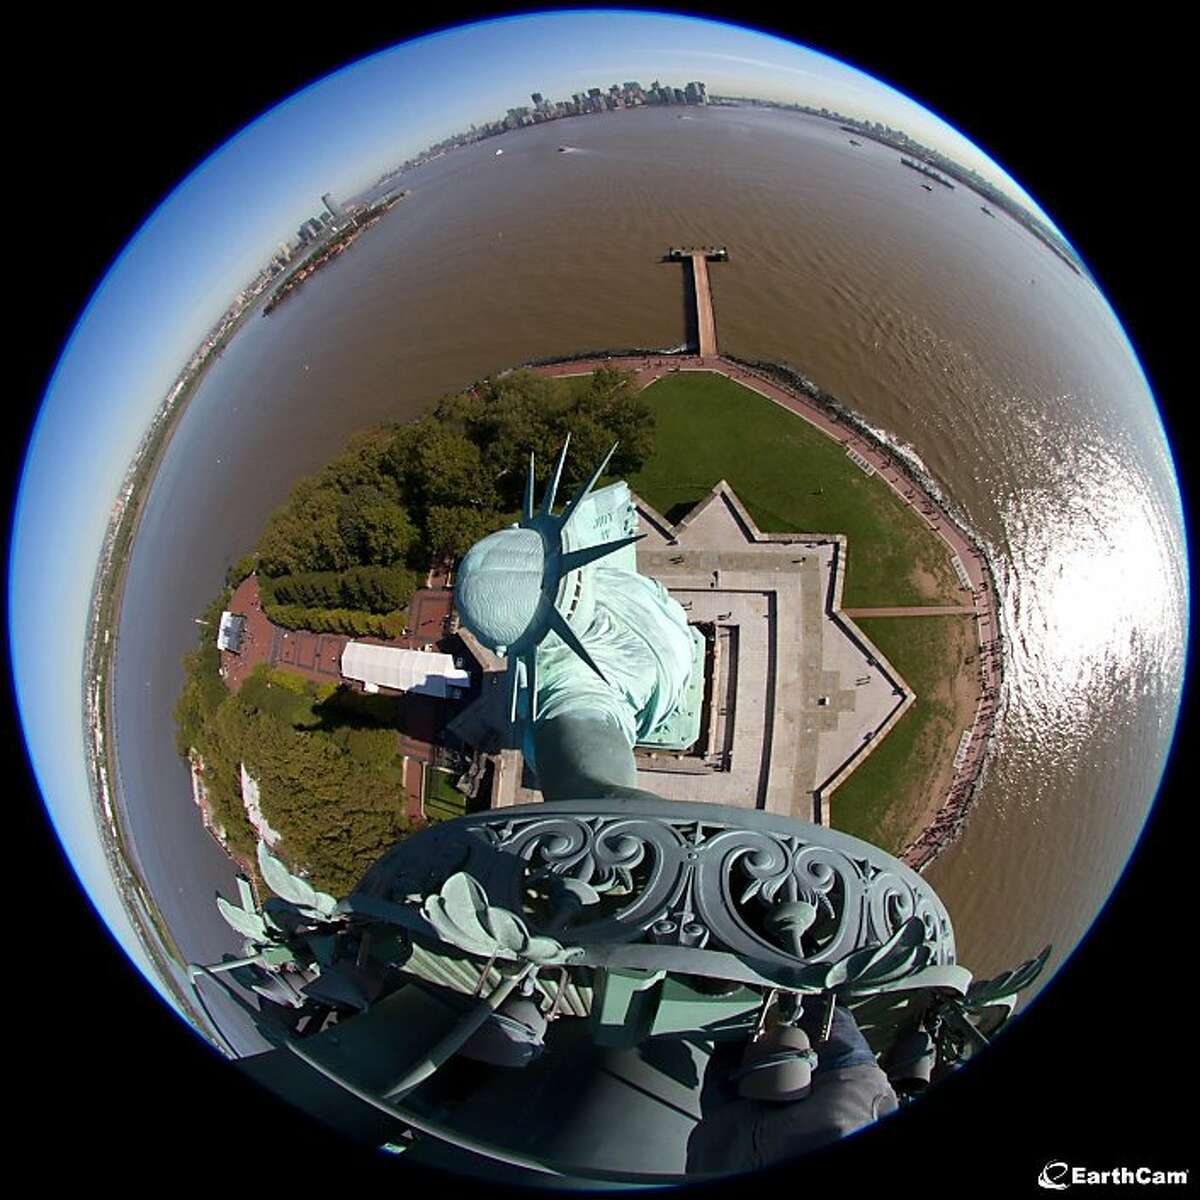 This undated photo provided by EarthCam, shows the Statue of Liberty in New York Harbor, in New York, through a fisheye lens mounted in its torch. Five torch cams will be switched on Friday, Oct. 28, 2011, during a ceremony to commemorate the statues dedication. The five cameras, which will be on 24 hours, 7 days a week, were donated to the National Park Service by Earthcam Inc., a New Jersey-based company that manages a network of webcams around the world. (AP Photo/EarthCam, James Nicoll)